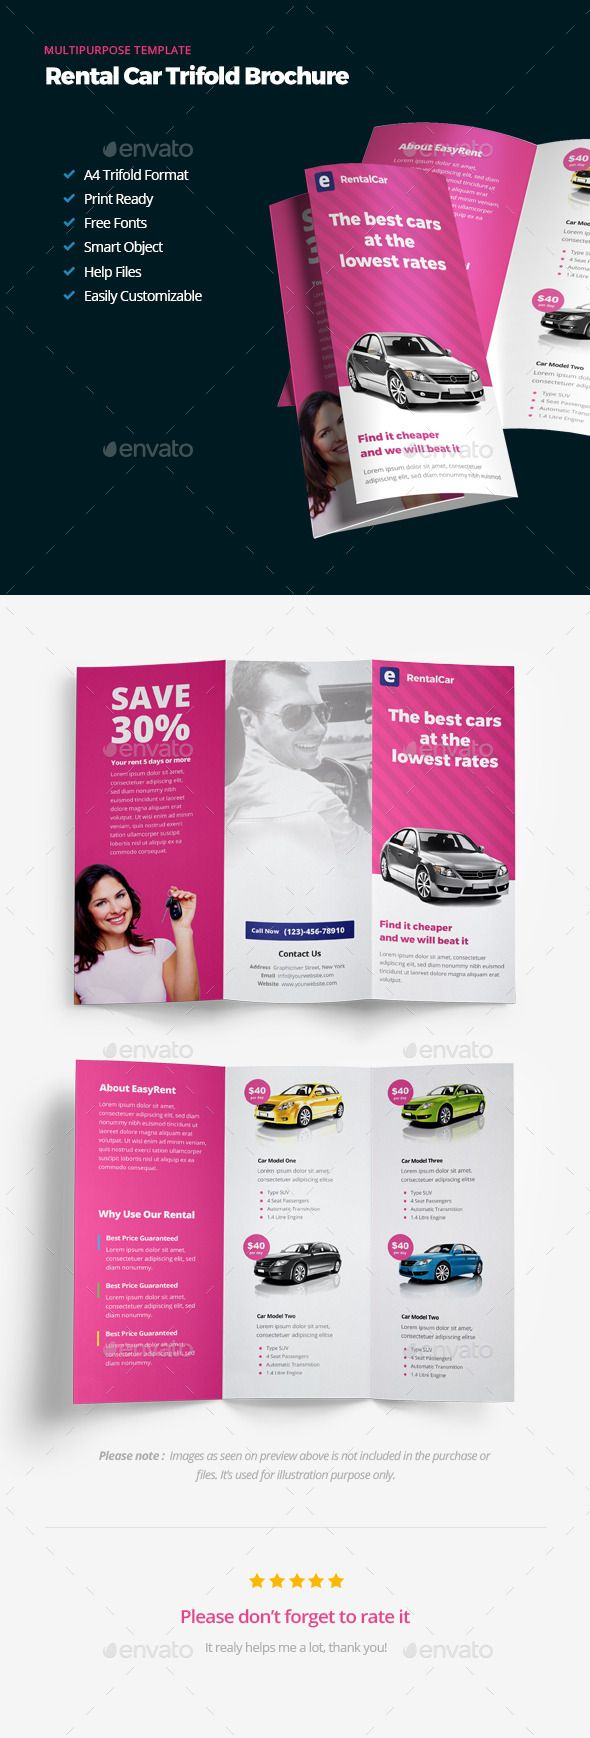 Rental Car Trifold Brochure Template #design Download: http://graphicriver.net/item/rental-car-trifold-brochure/13185523?ref=ksioks